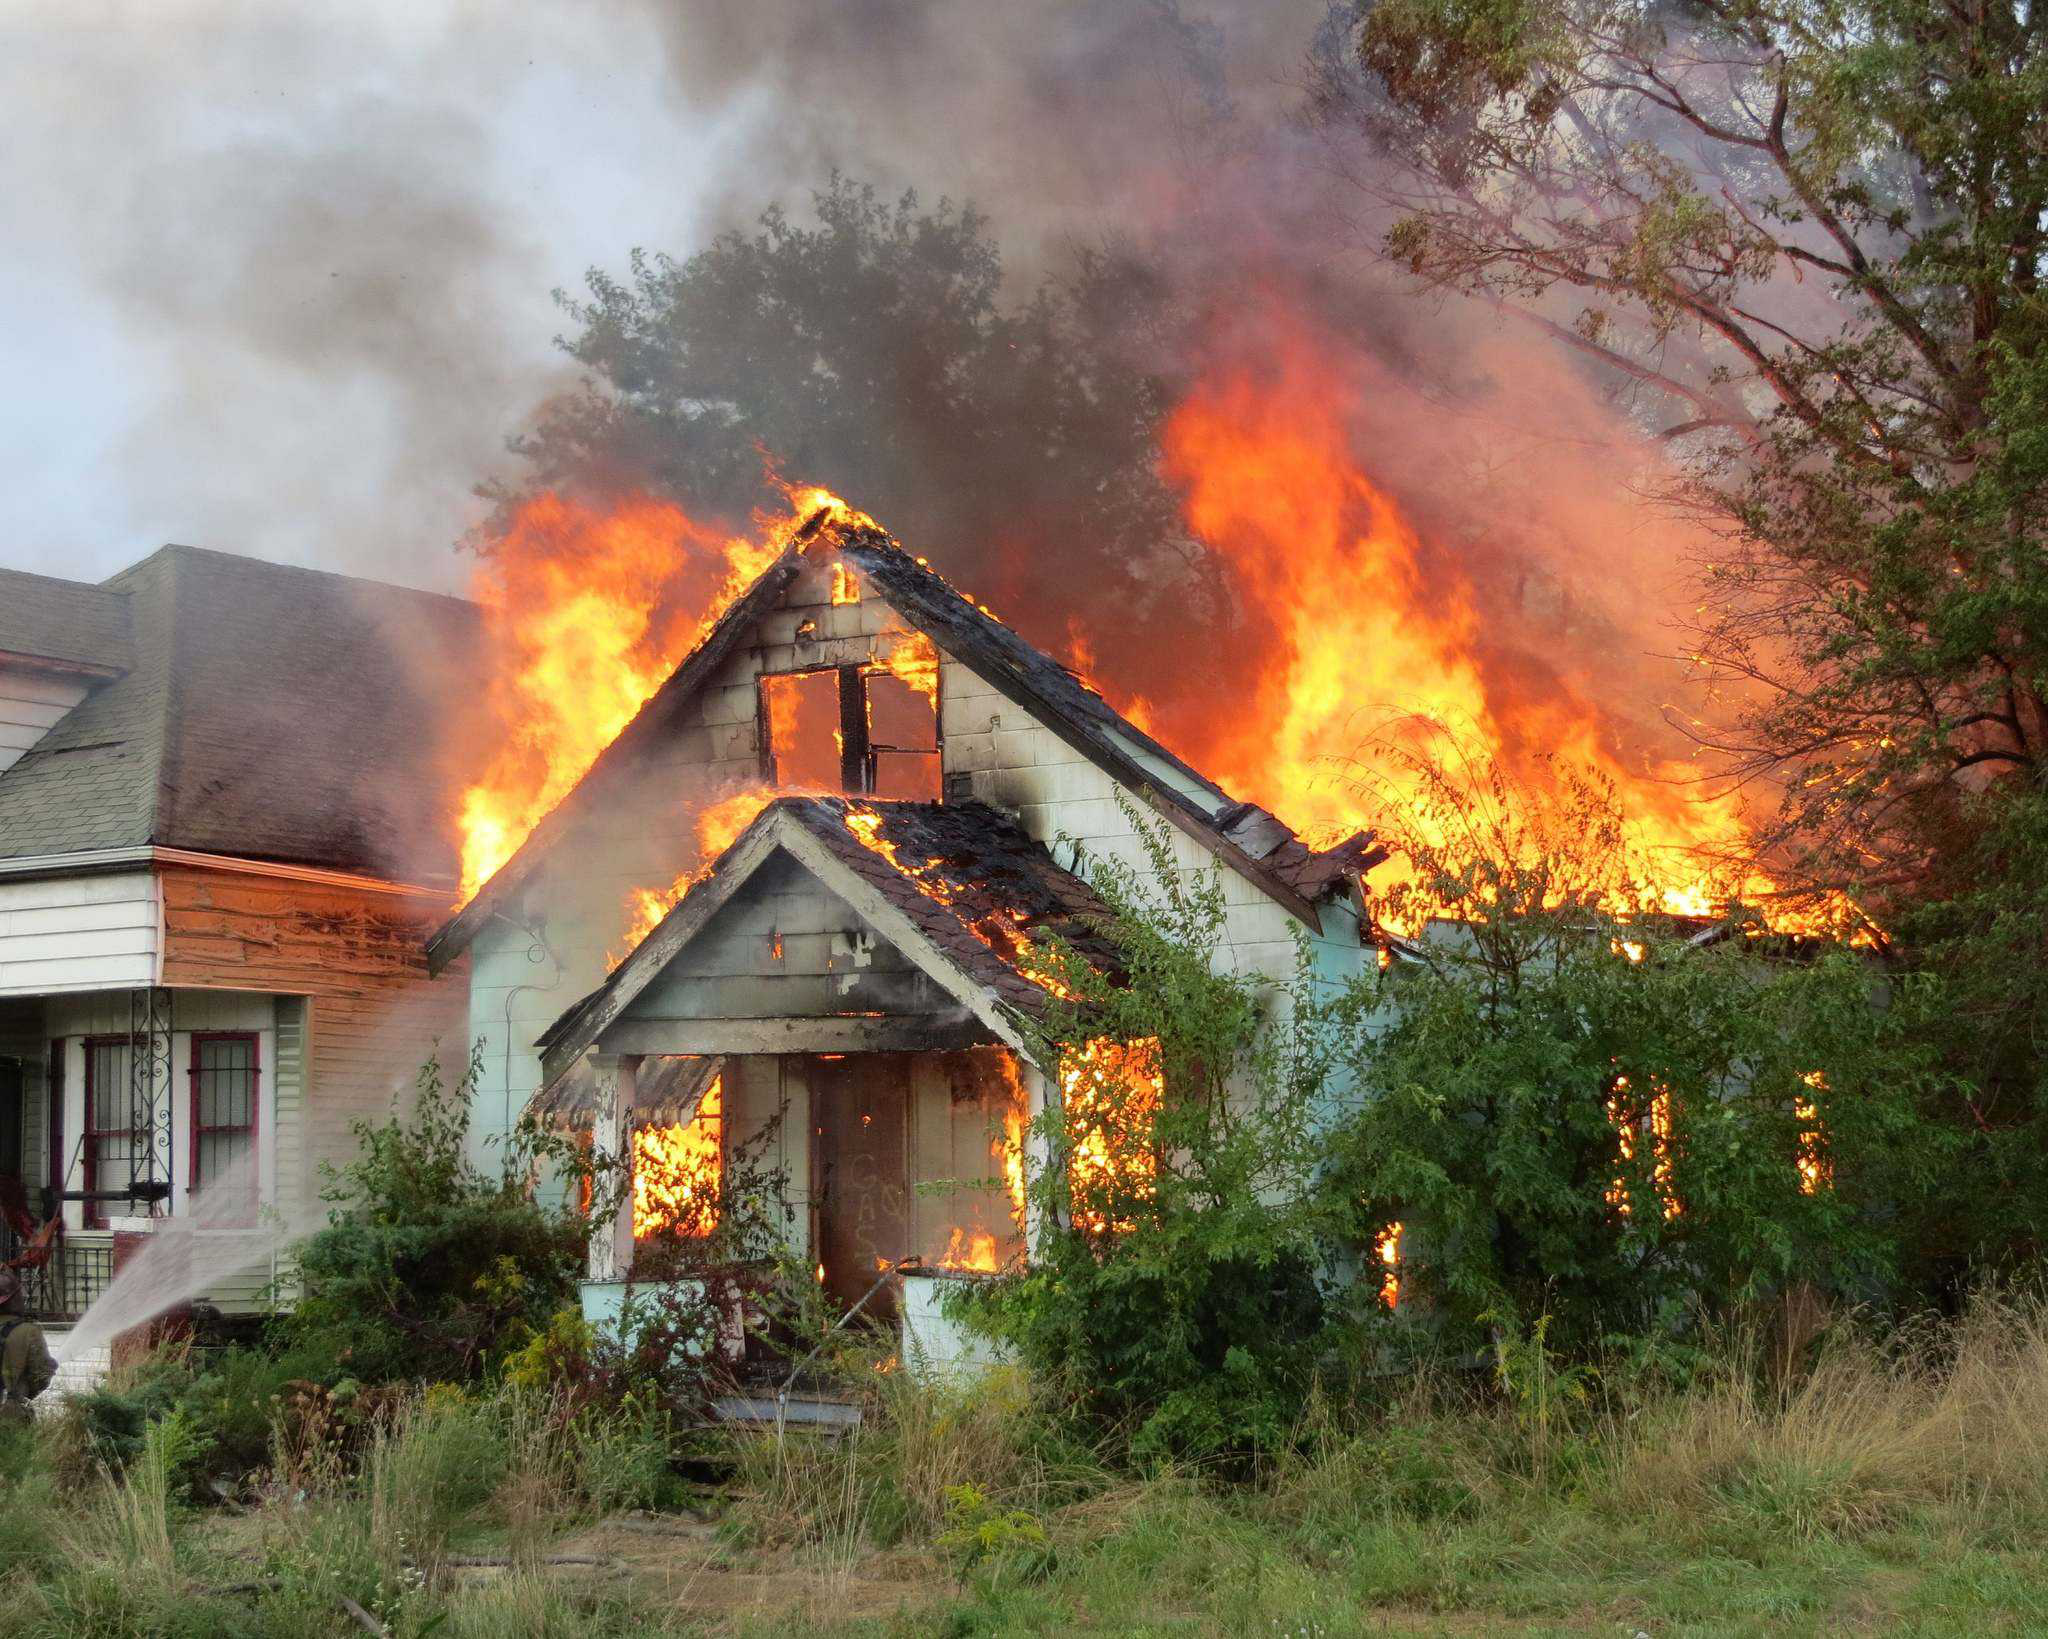 Landscapers Rush To Save Lives When Fire Starts Near A Job